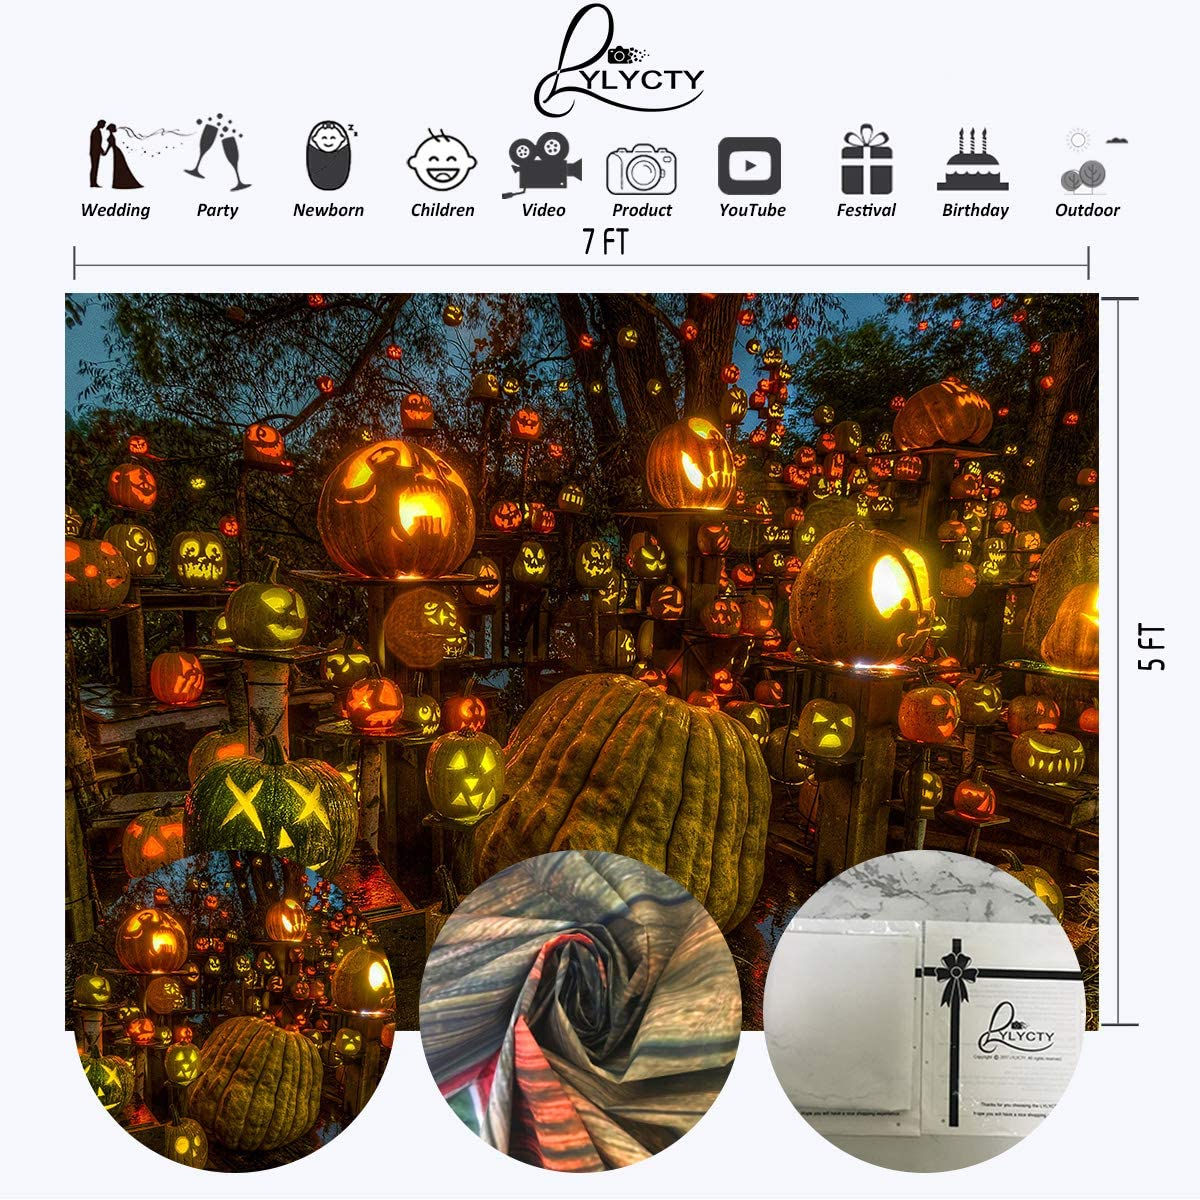 LYLYCTY 7x5ft Halloween Backdrops Forest Pumpkin Lantern Party Photography Background Studio Prop LYZY1023